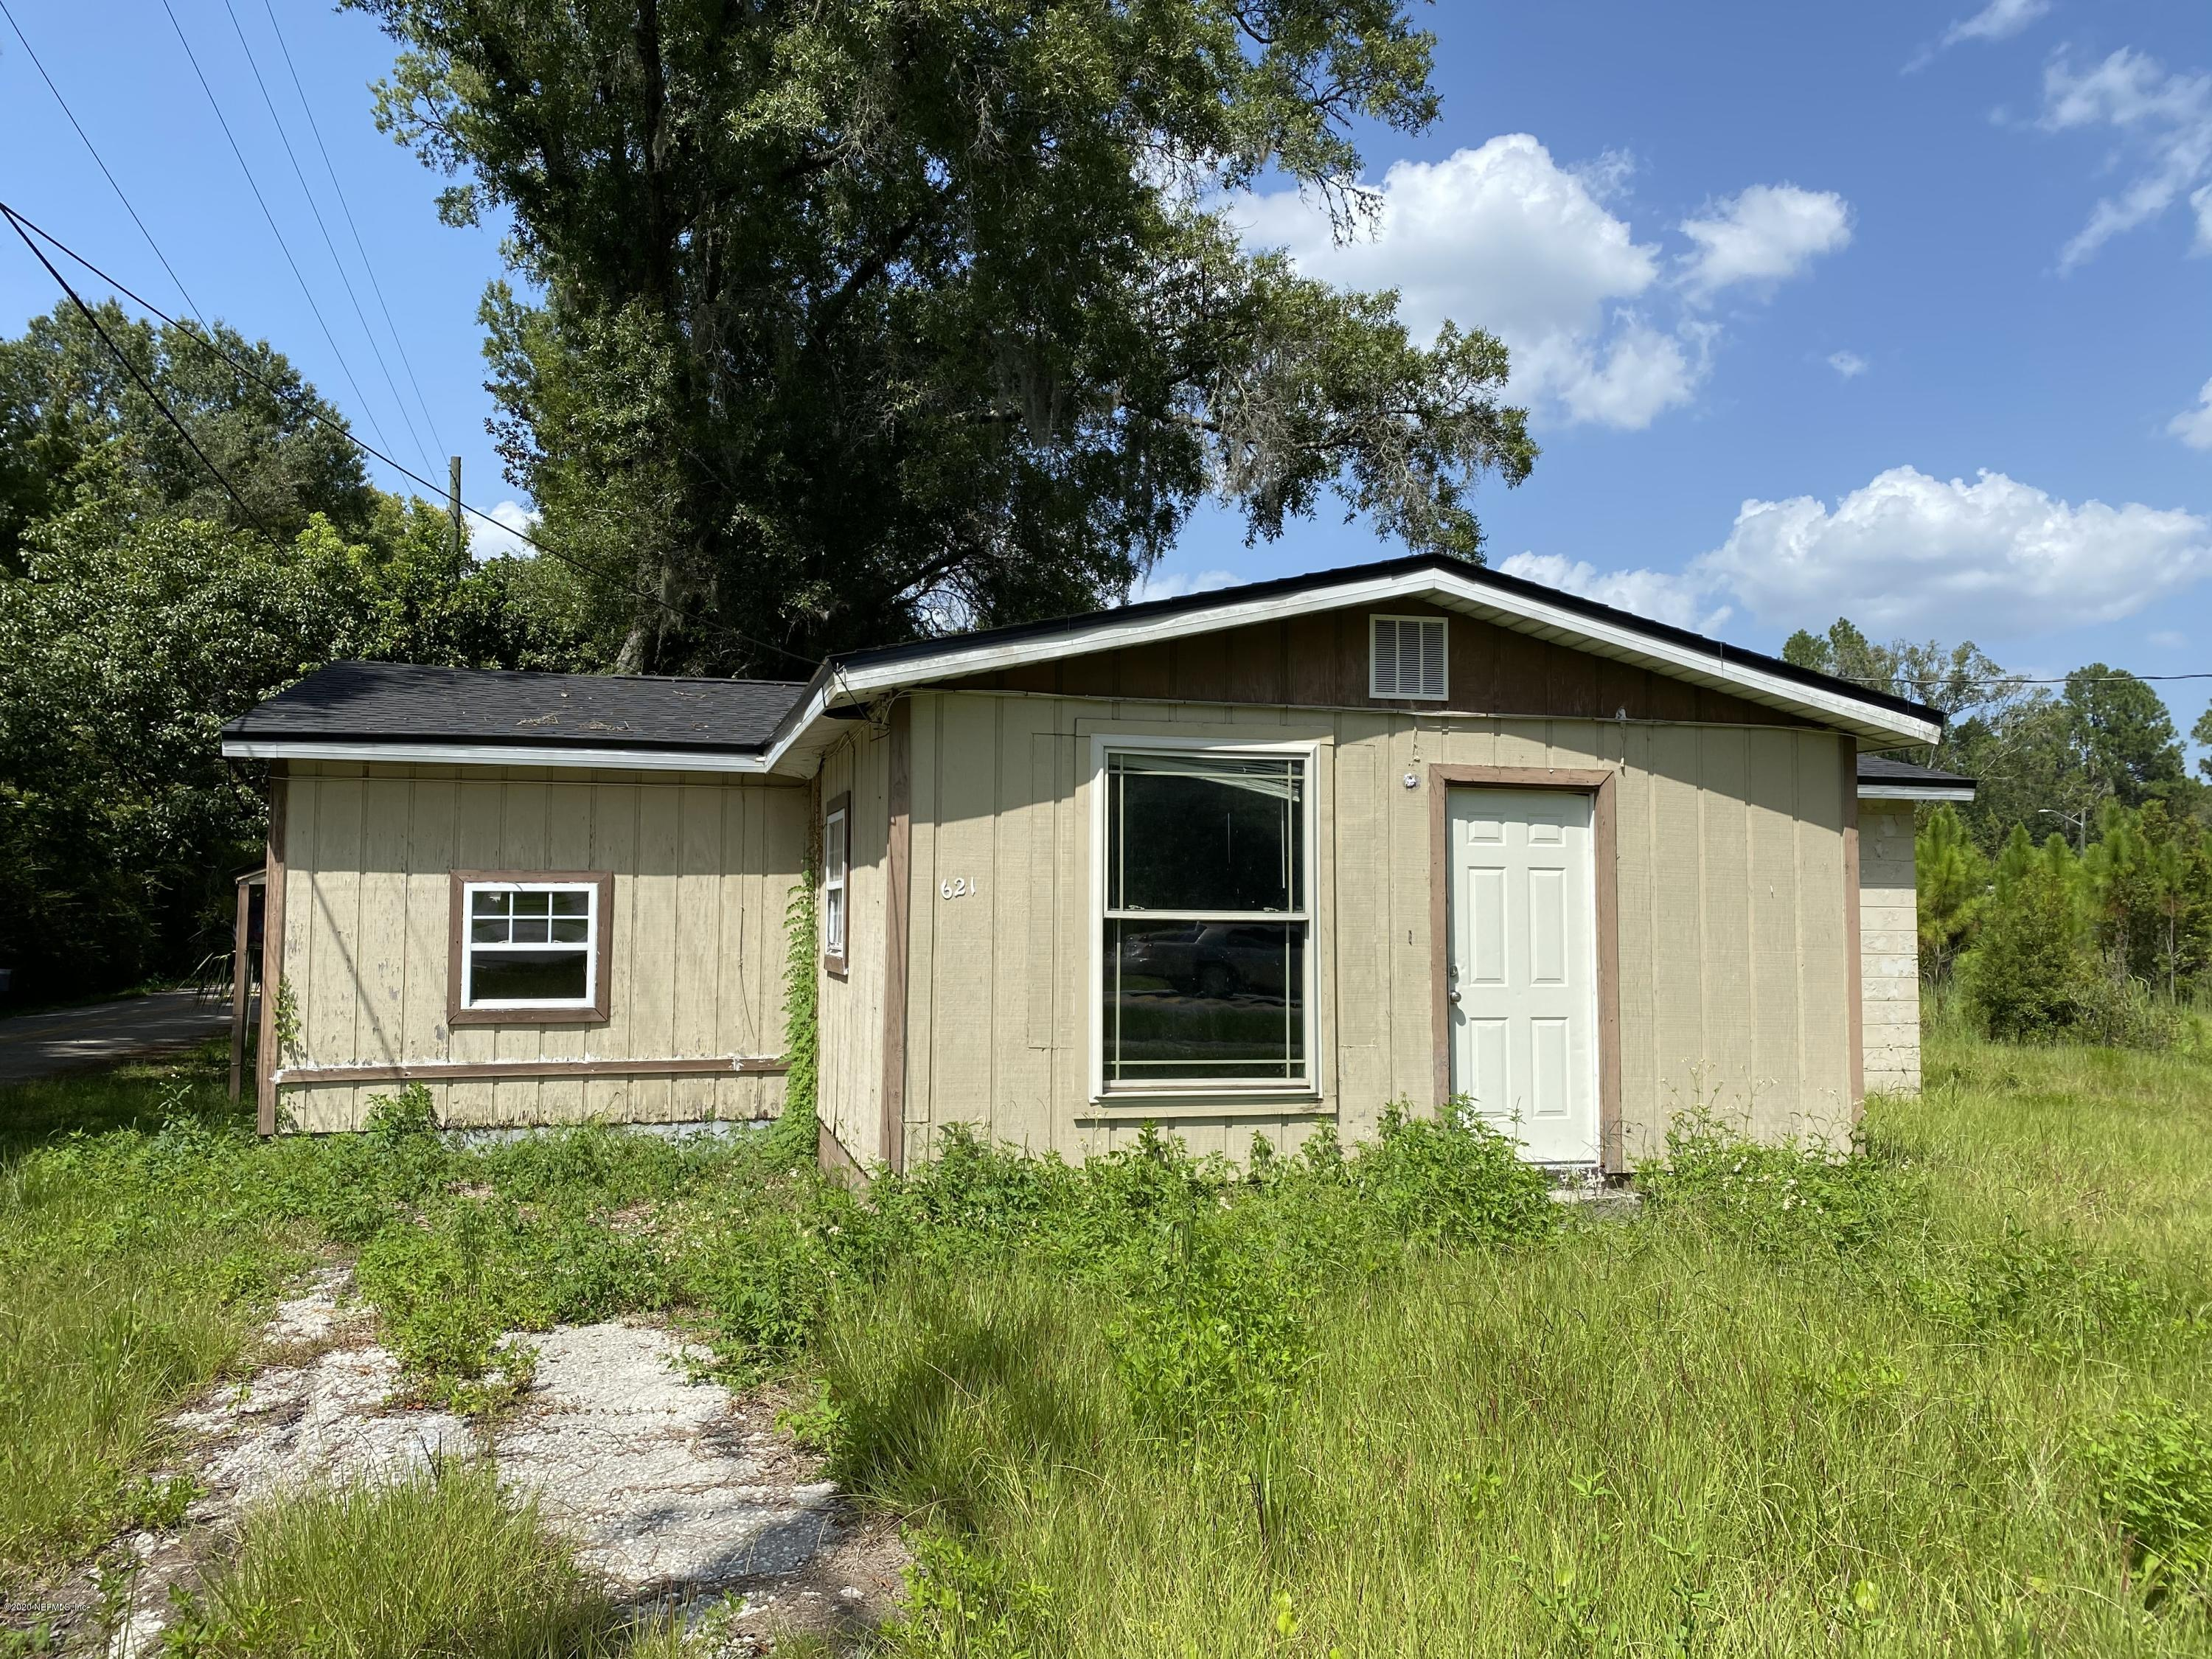 Details for 621 Us-90, BALDWIN, FL 32234